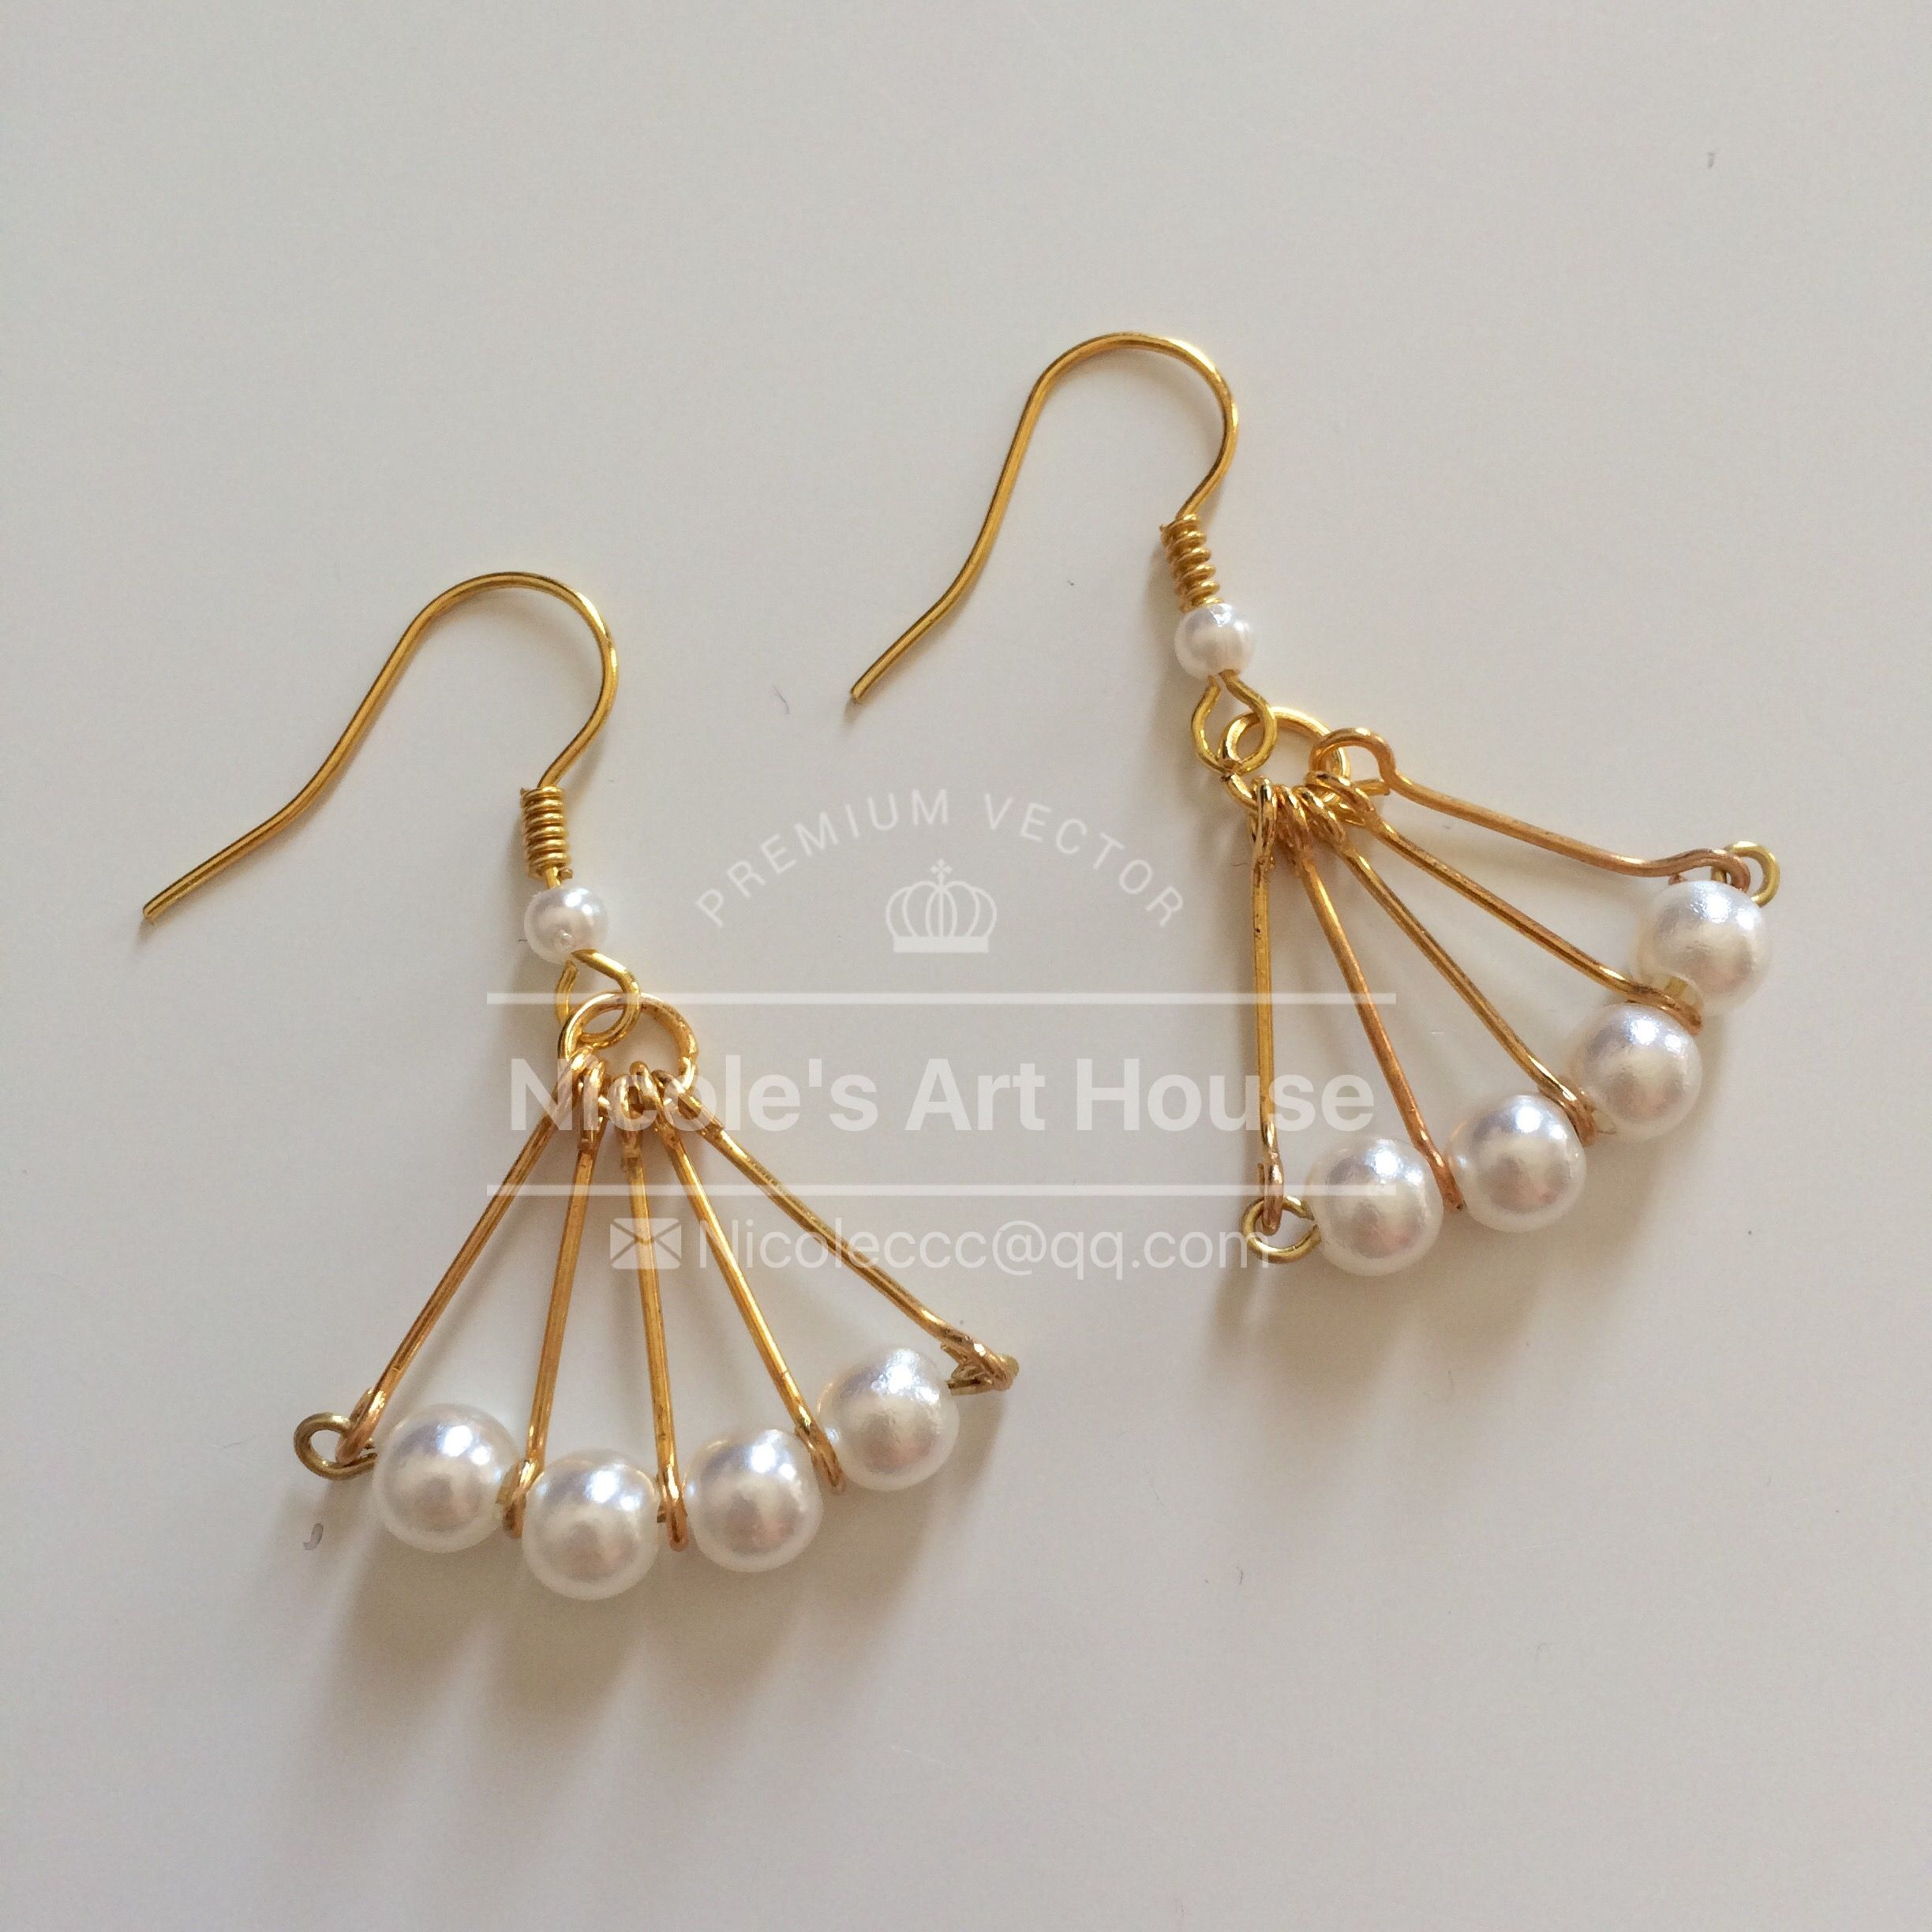 earrings handmade selepceny atelier jewellery product fashion and stiahnu limited designer back